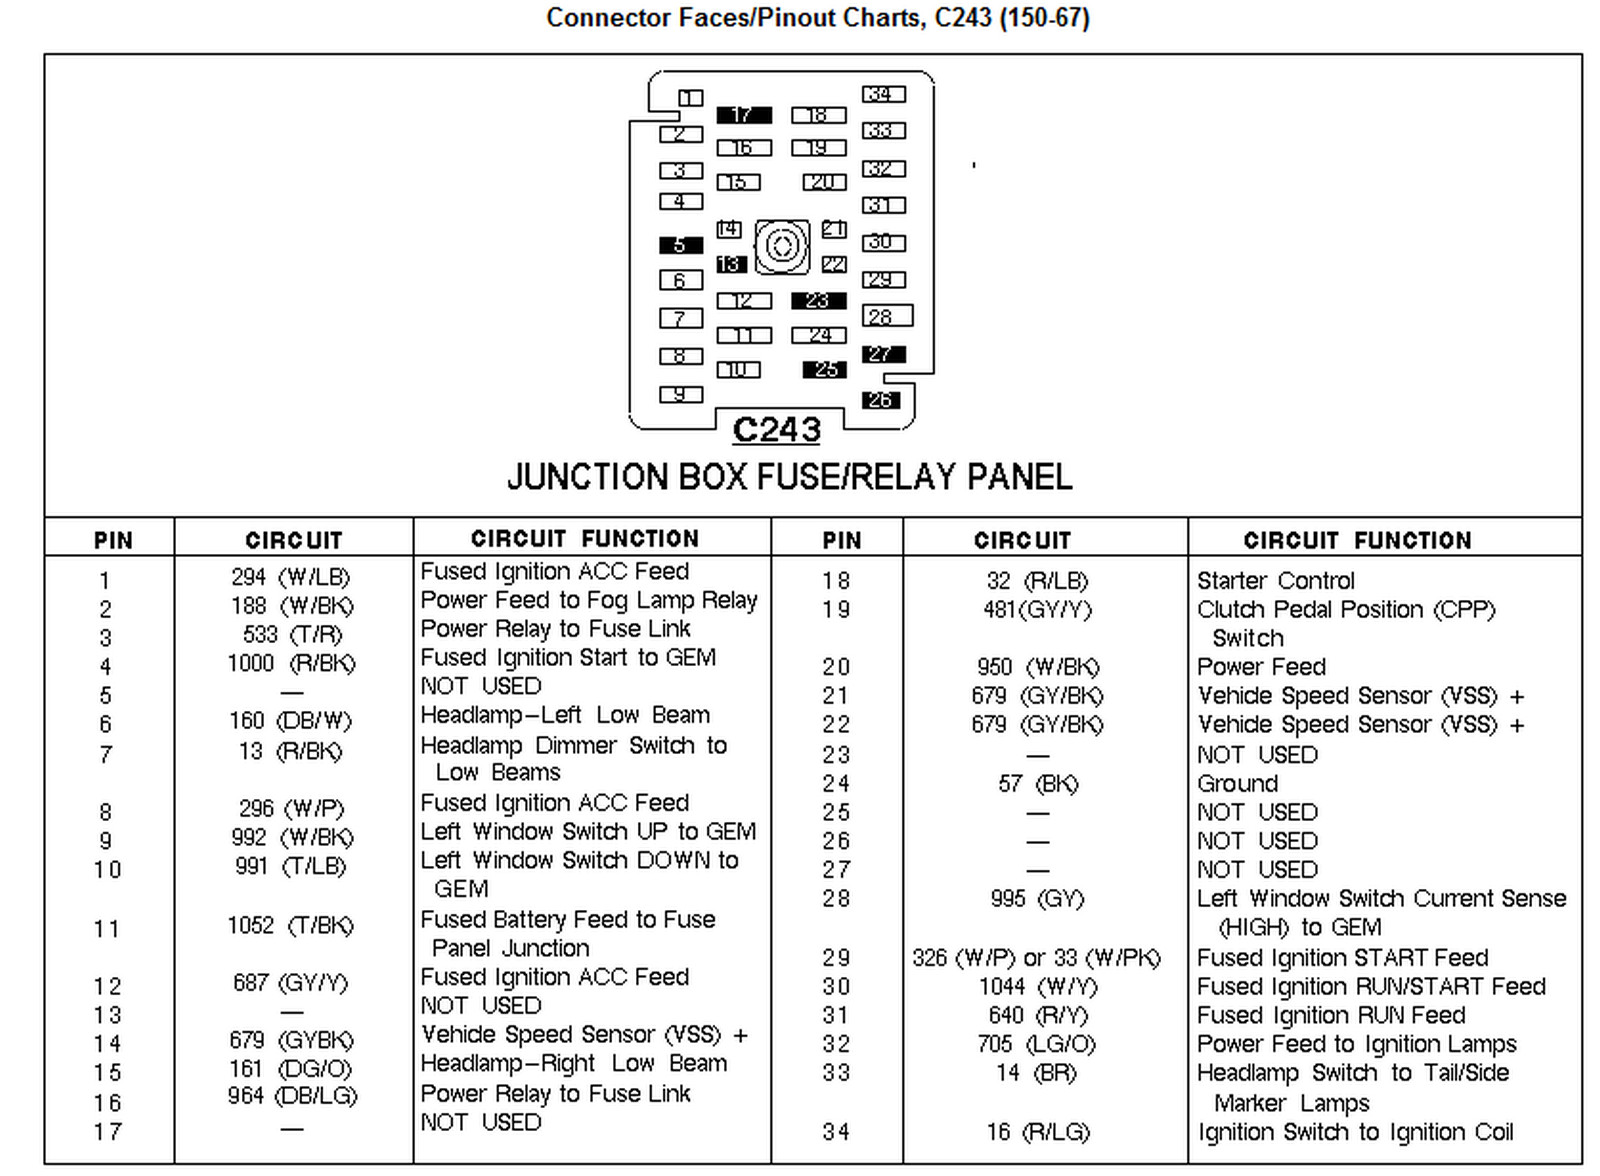 2014 F 150 Fuse Box Diagram Schema Wiring Diagram Online F-150 Steering  Column Diagram 2014 F 150 Fuse Box Diagram